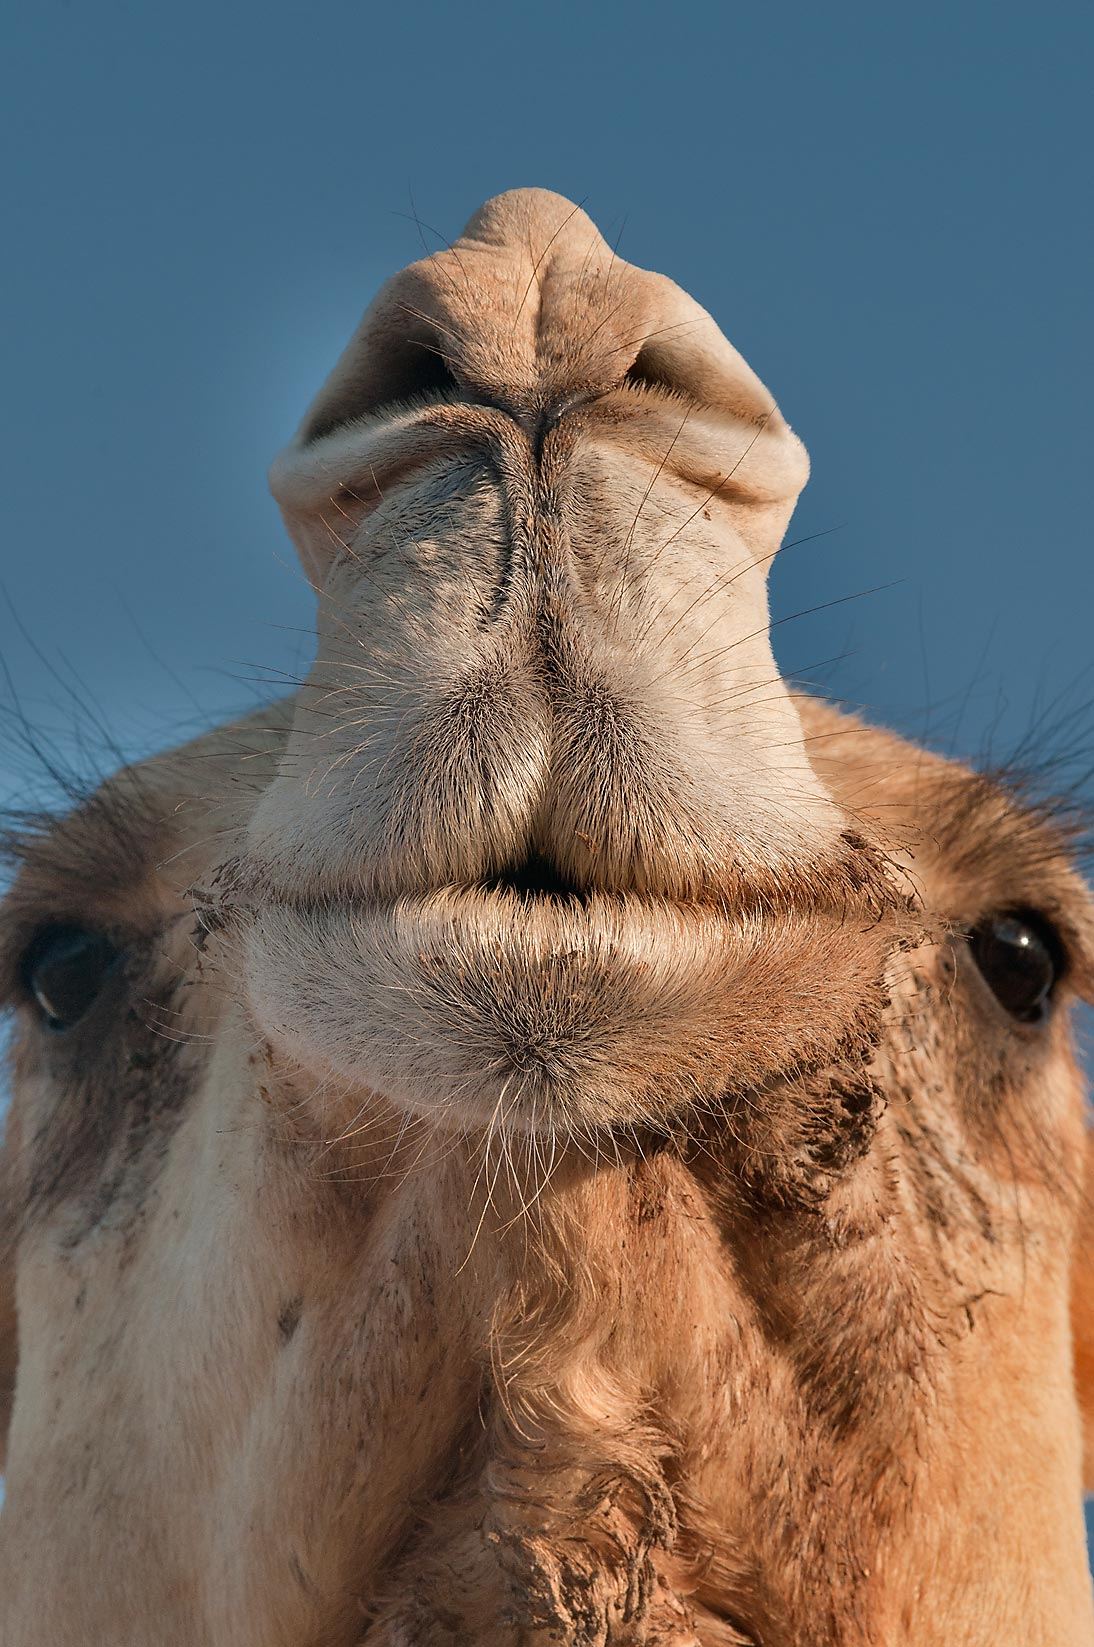 Camel's nose in Camel Market (Souq), Wholesale Markets area. Doha, Qatar